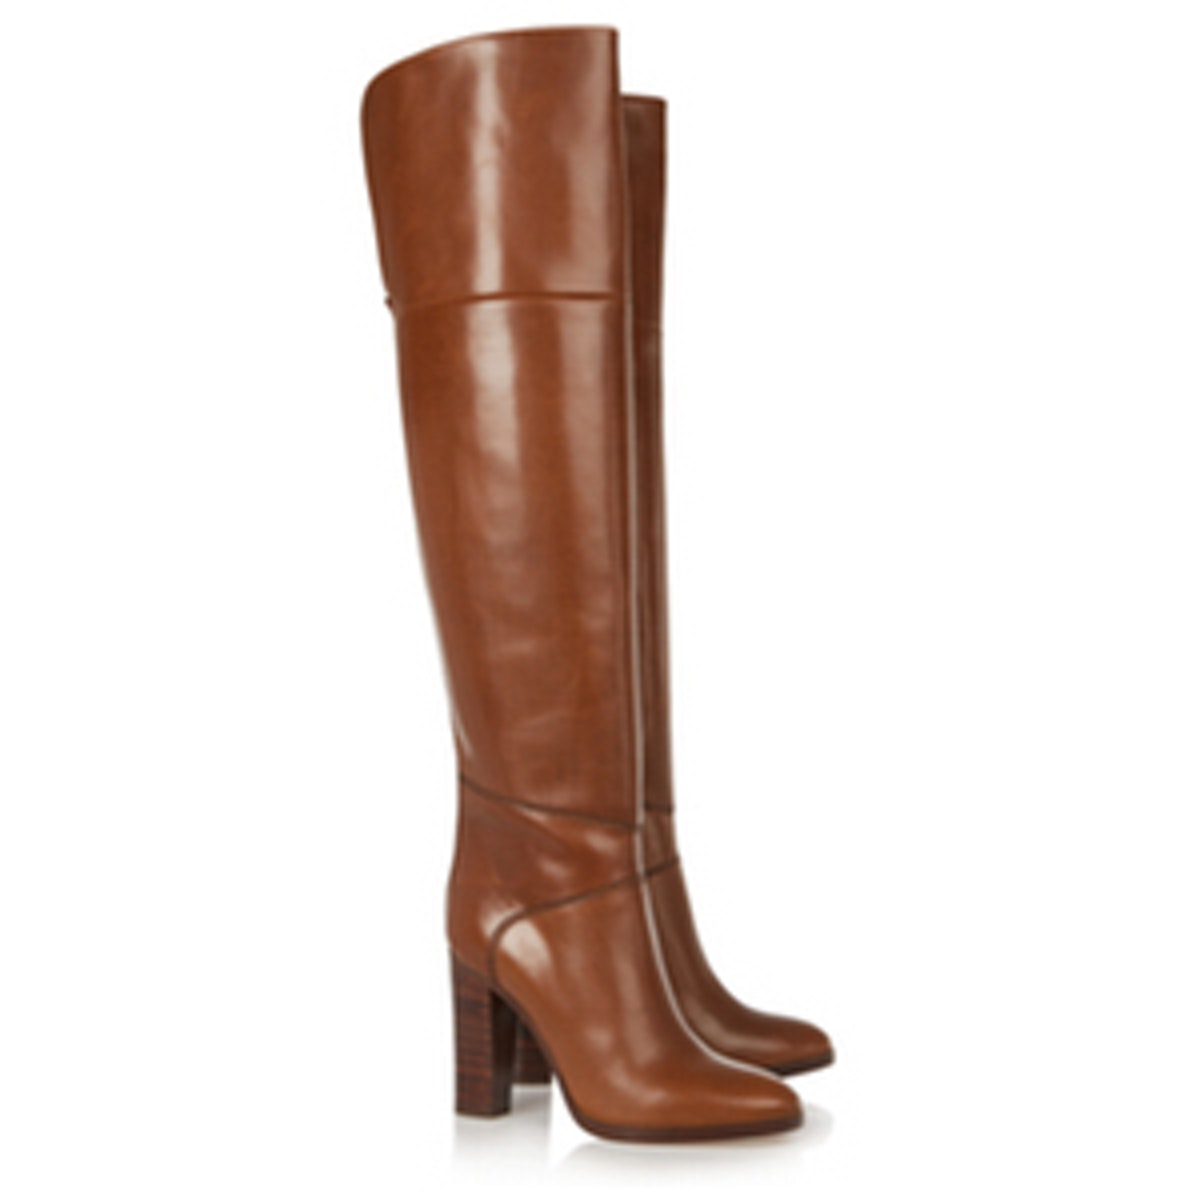 Glossed-leather Over-the-Knee Boots